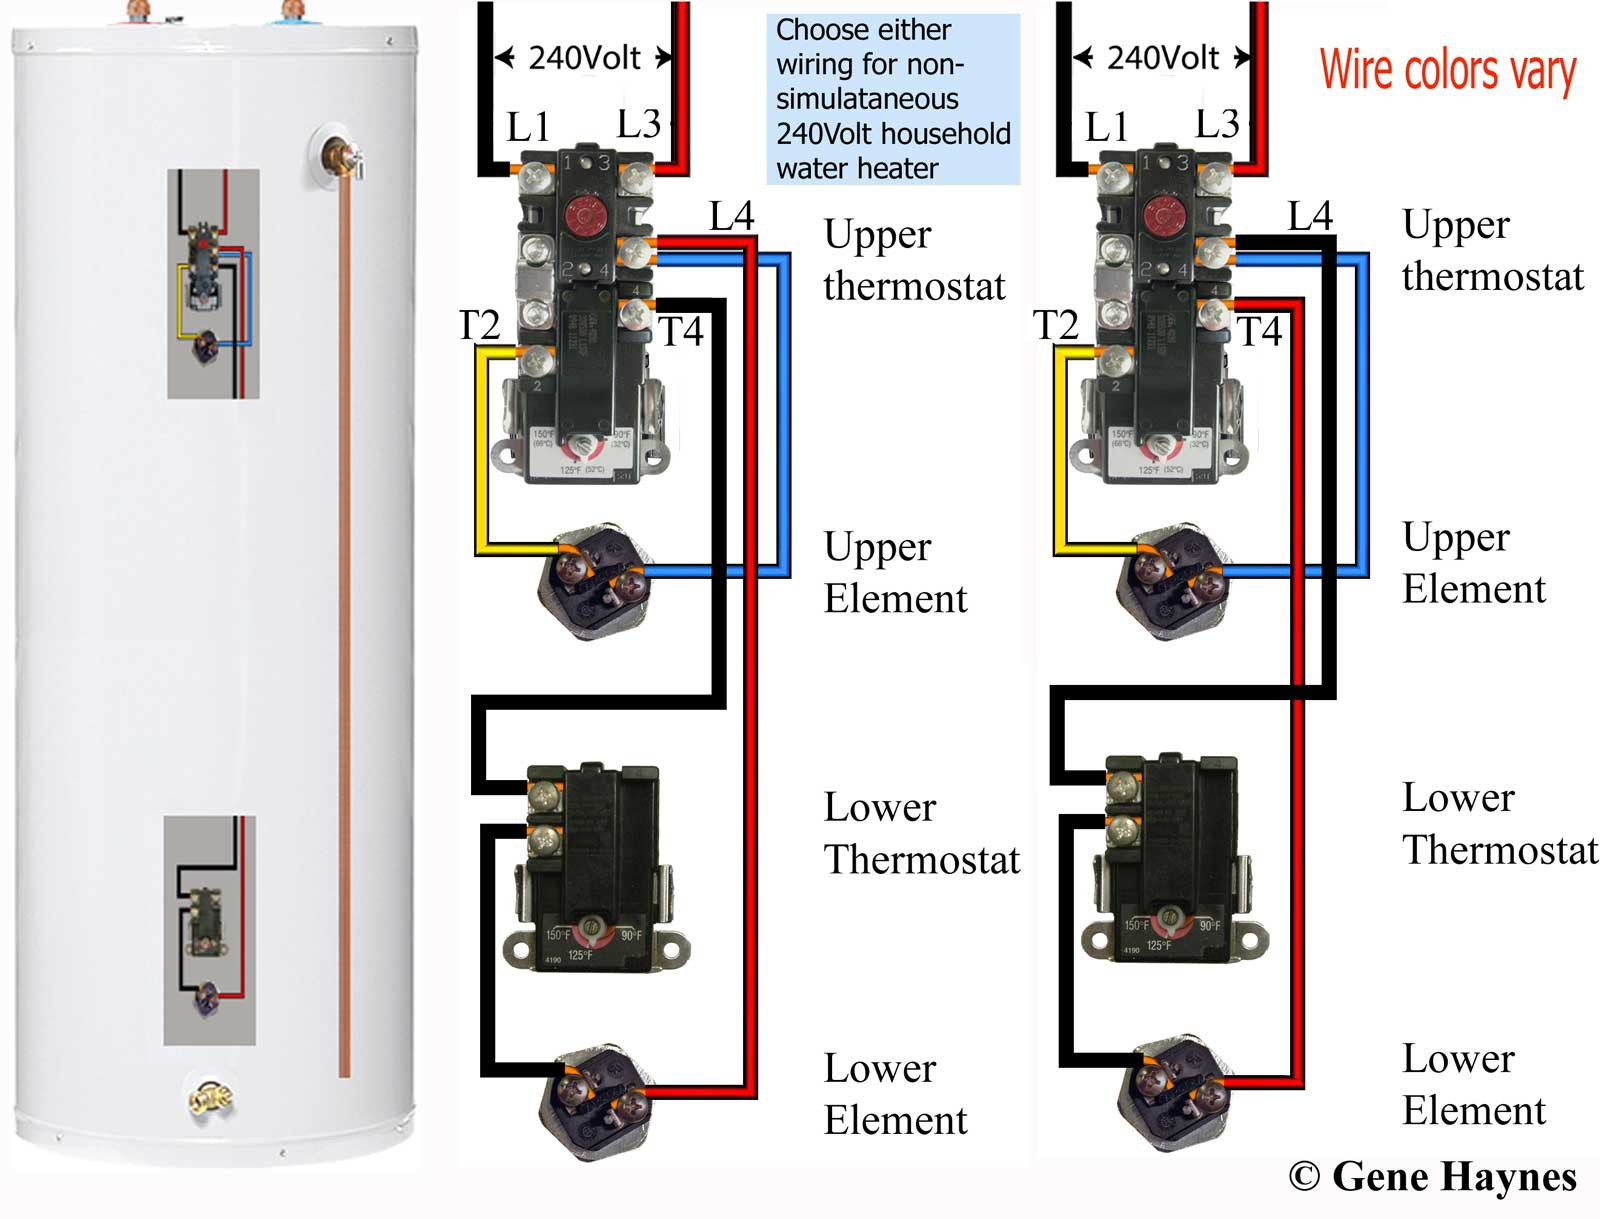 electric water heater thermostat wiring diagram Download-Water Heater Wiring Diagram Dual Element Fresh How to Wire Water Heater thermostats 3-q